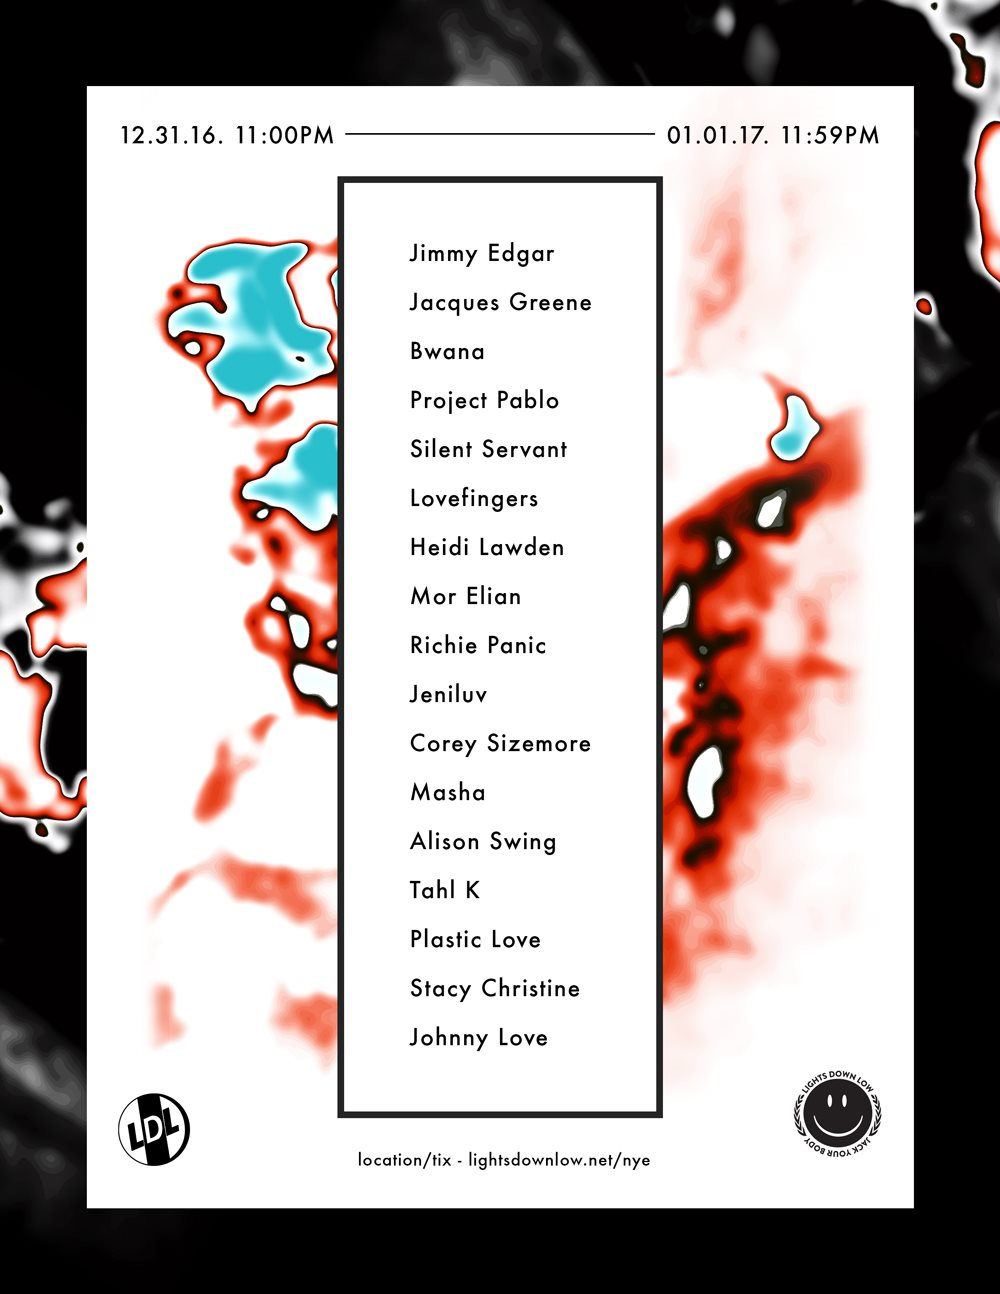 Lights Down Low LA NYE 24 Hour Party People - Flyer front